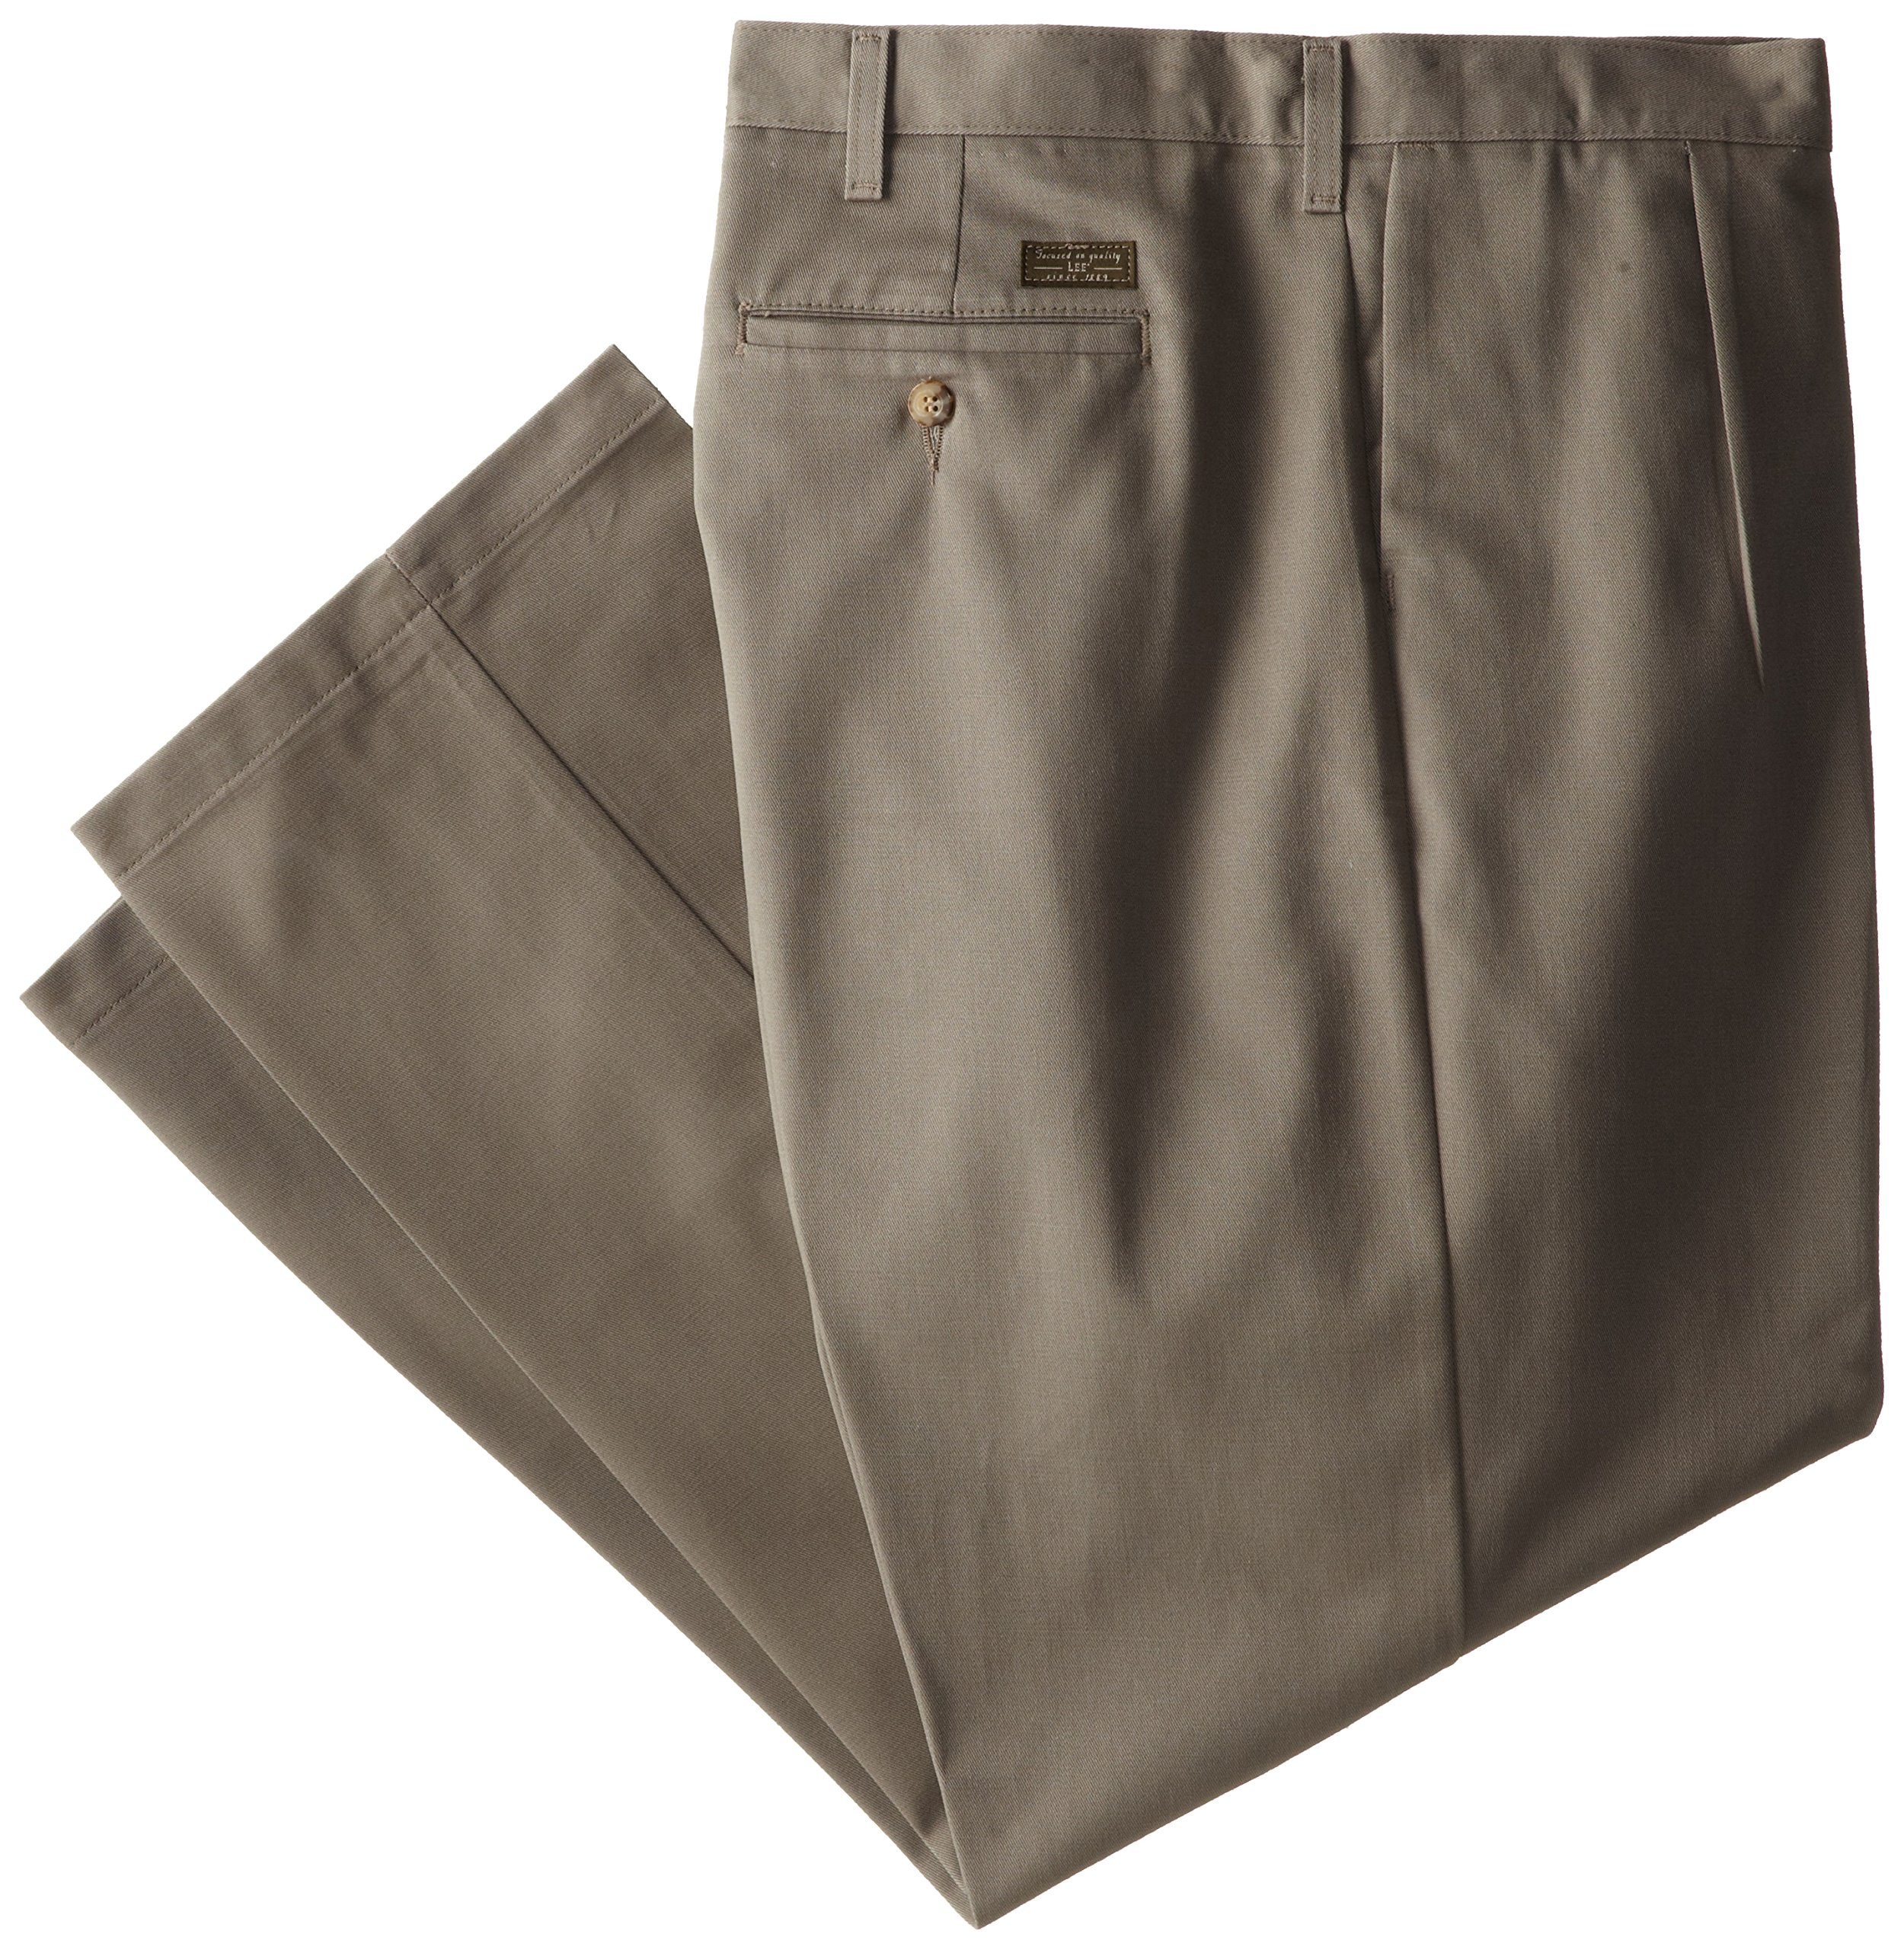 Lee Men's Big-Tall Stain Resistant Relaxed Fit Pleated Pant, Olive, 52W x 32L